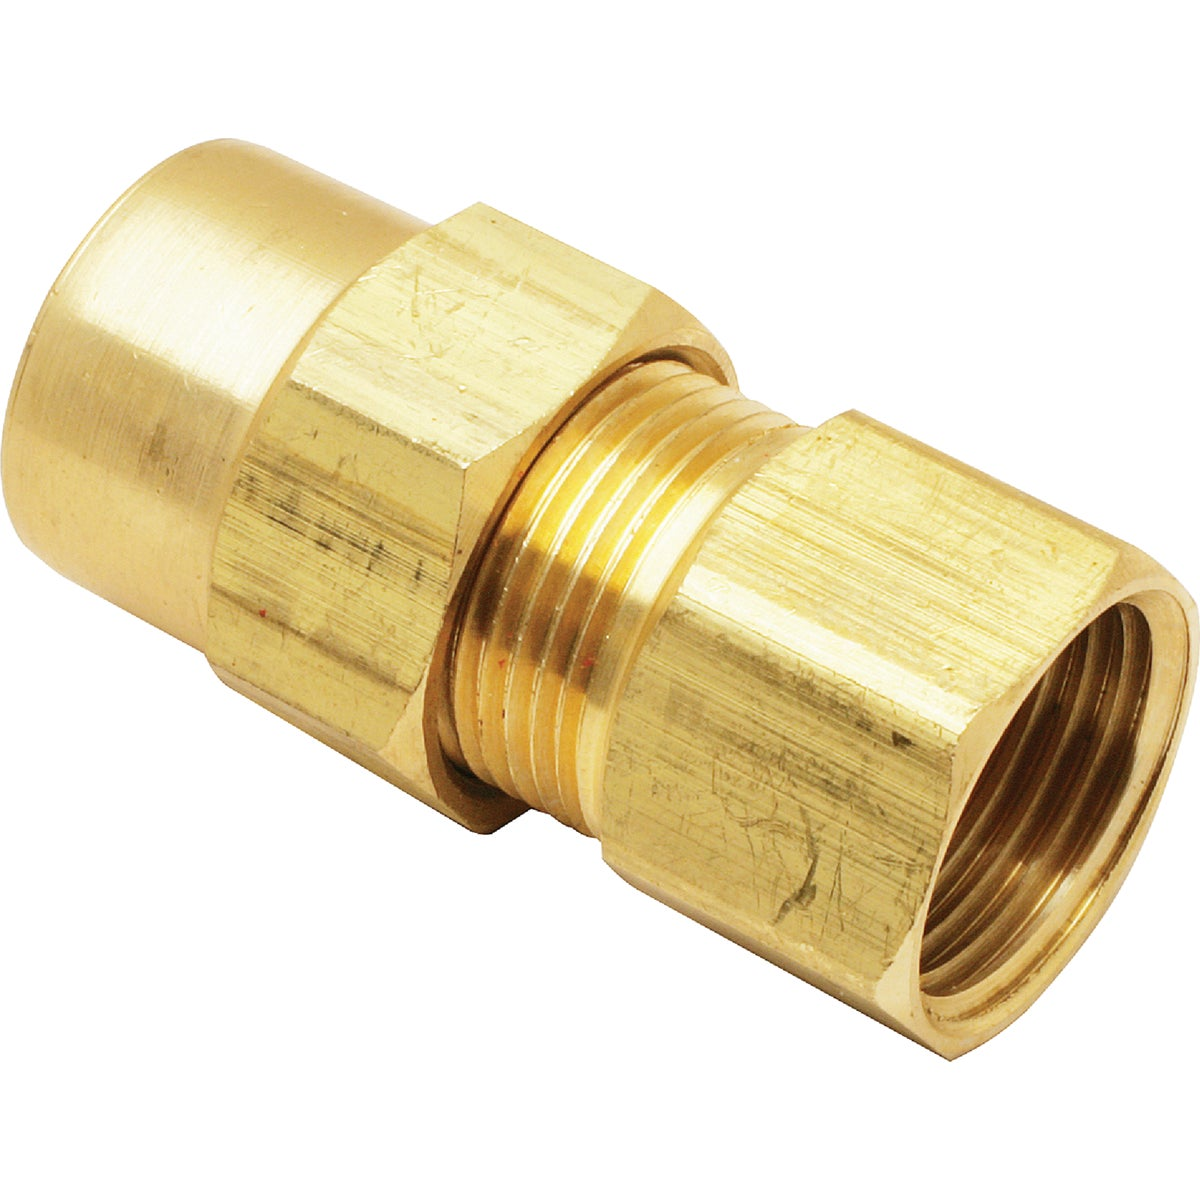 1/2CPVCX1/2FIP ADAPTER - 455876 by Plumb Pak/keeney Mfg